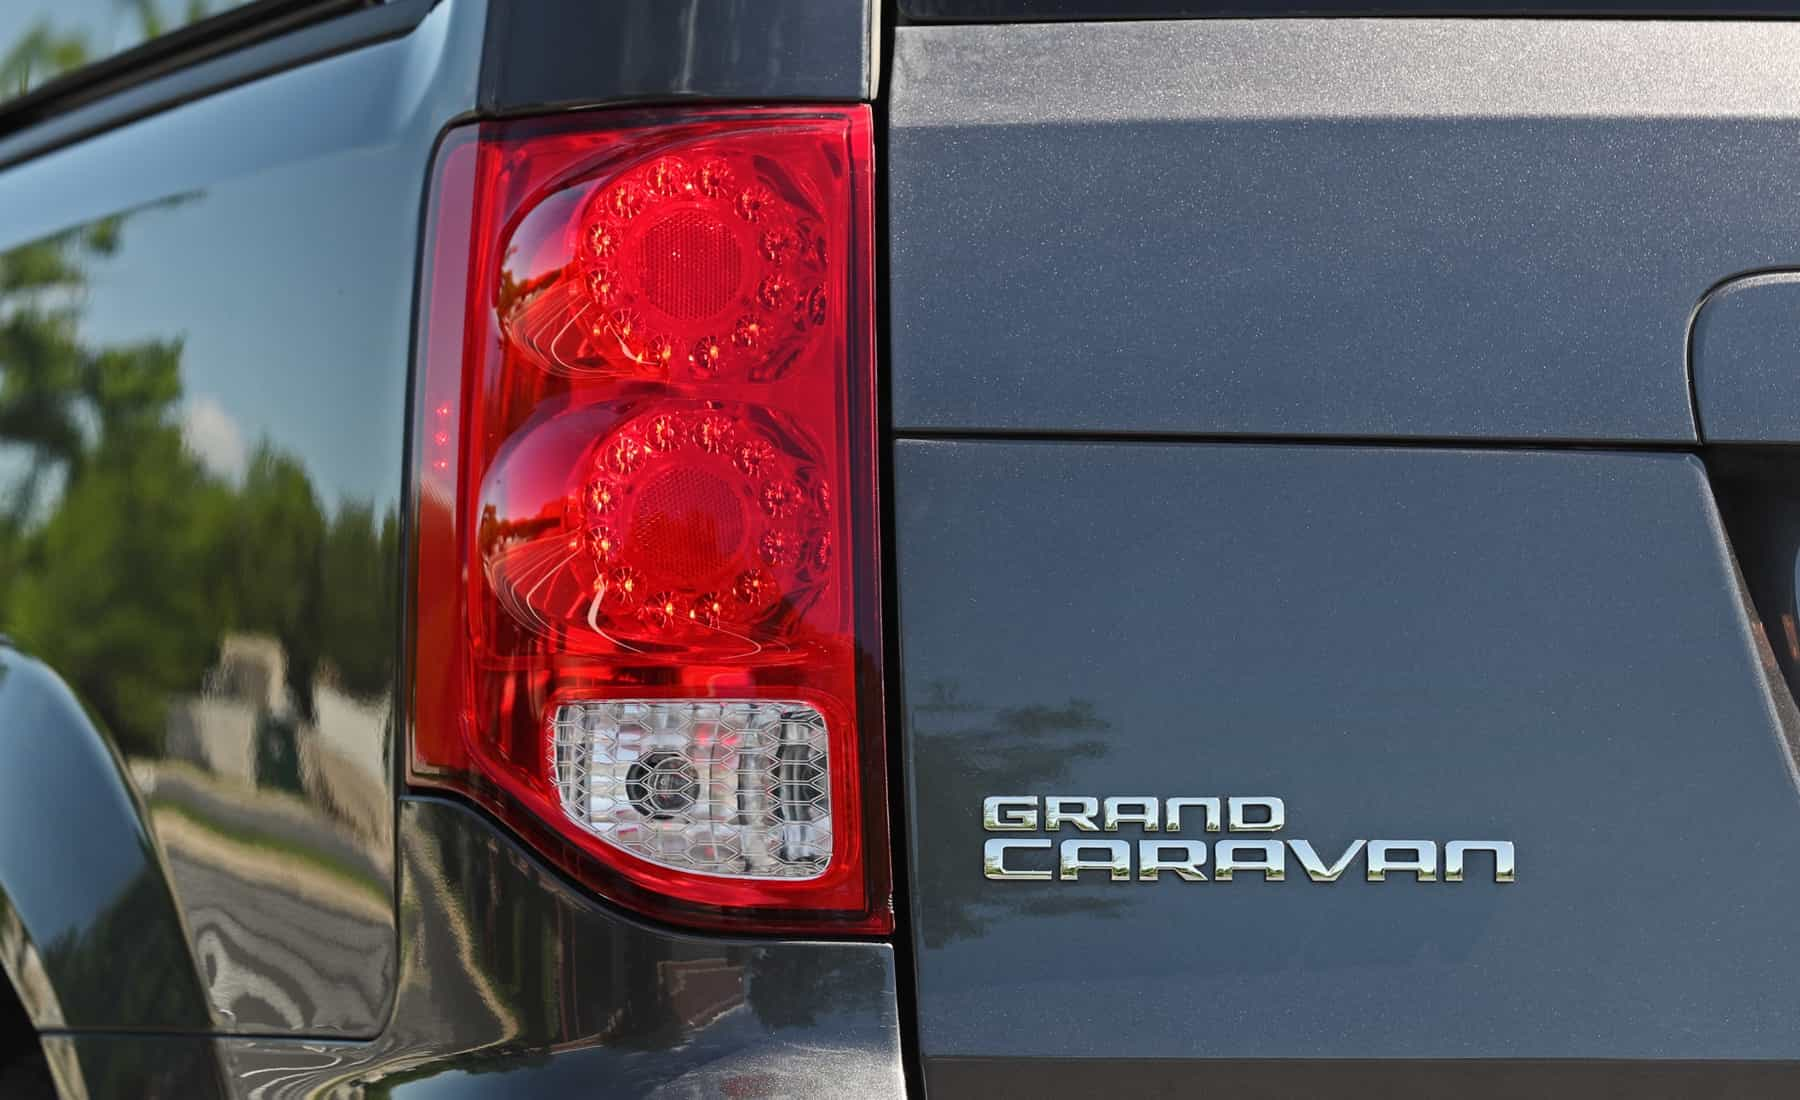 2017 Dodge Grand Caravan Exterior View Taillight (View 34 of 47)